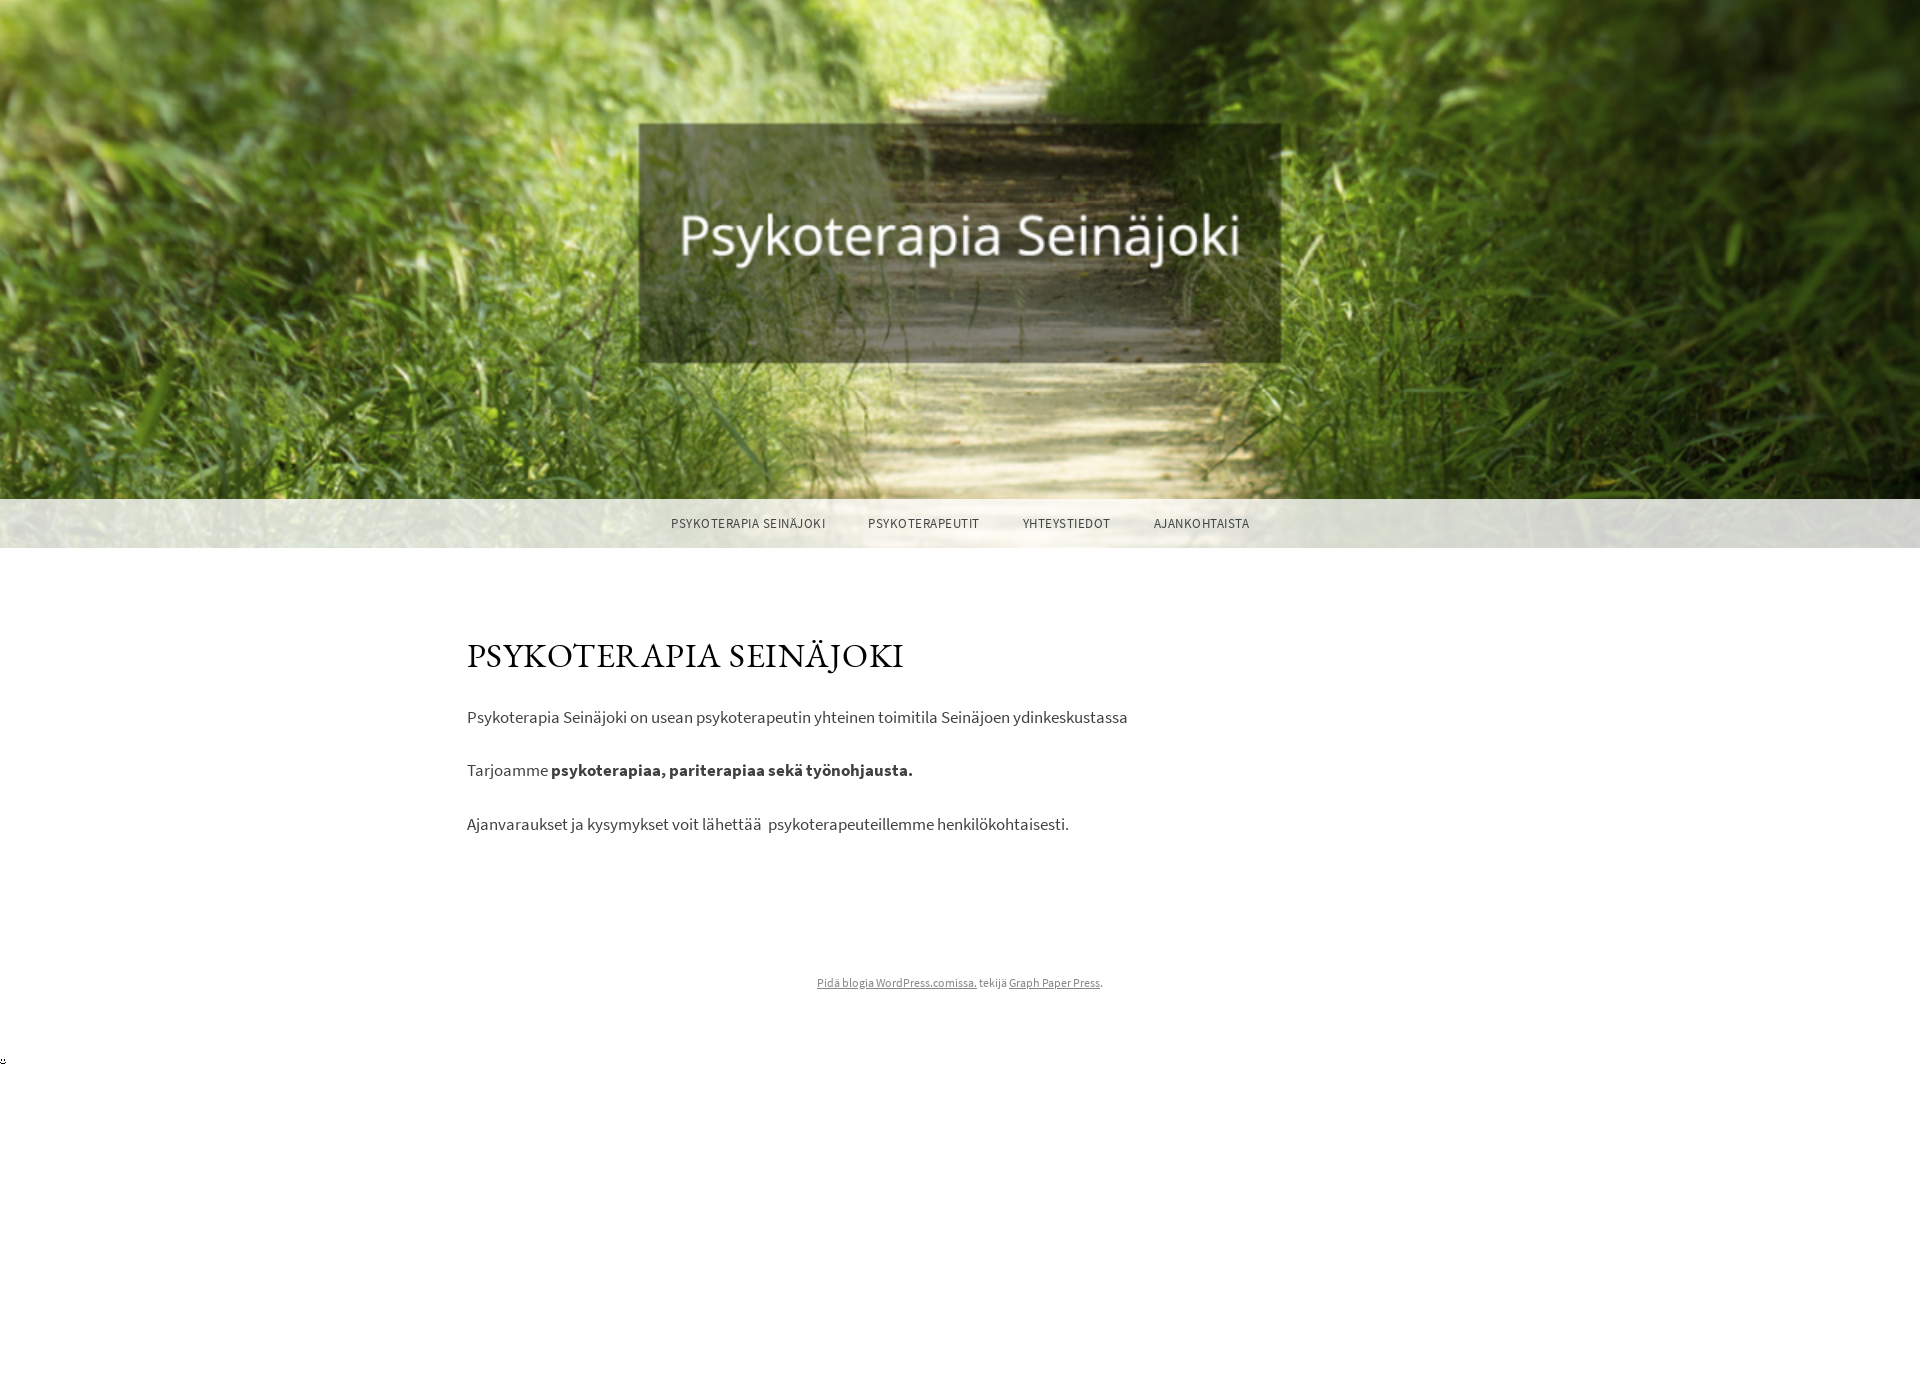 Screenshot for psykoterapia-seinajoki.fi